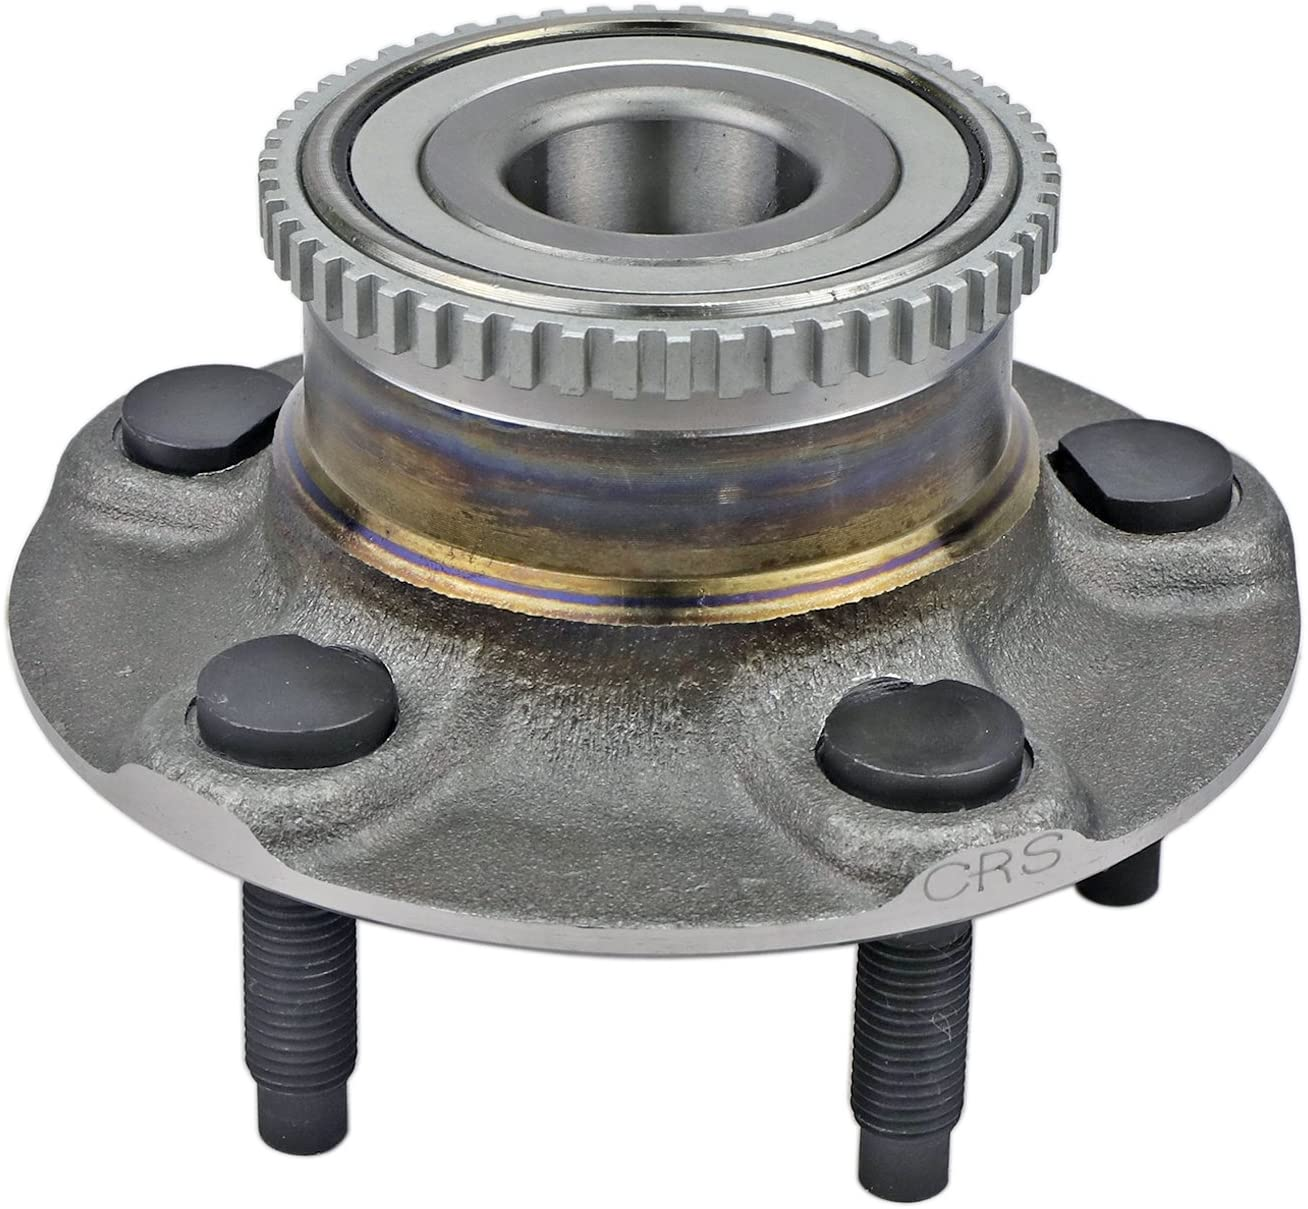 Bodeman - REAR Wheel Hub & Bearing Assembly for 2001-2005 Mercury Sable/ 2001-2007 Ford Taurus - Models w/ABS & Rear Drum Brakes ONLY!